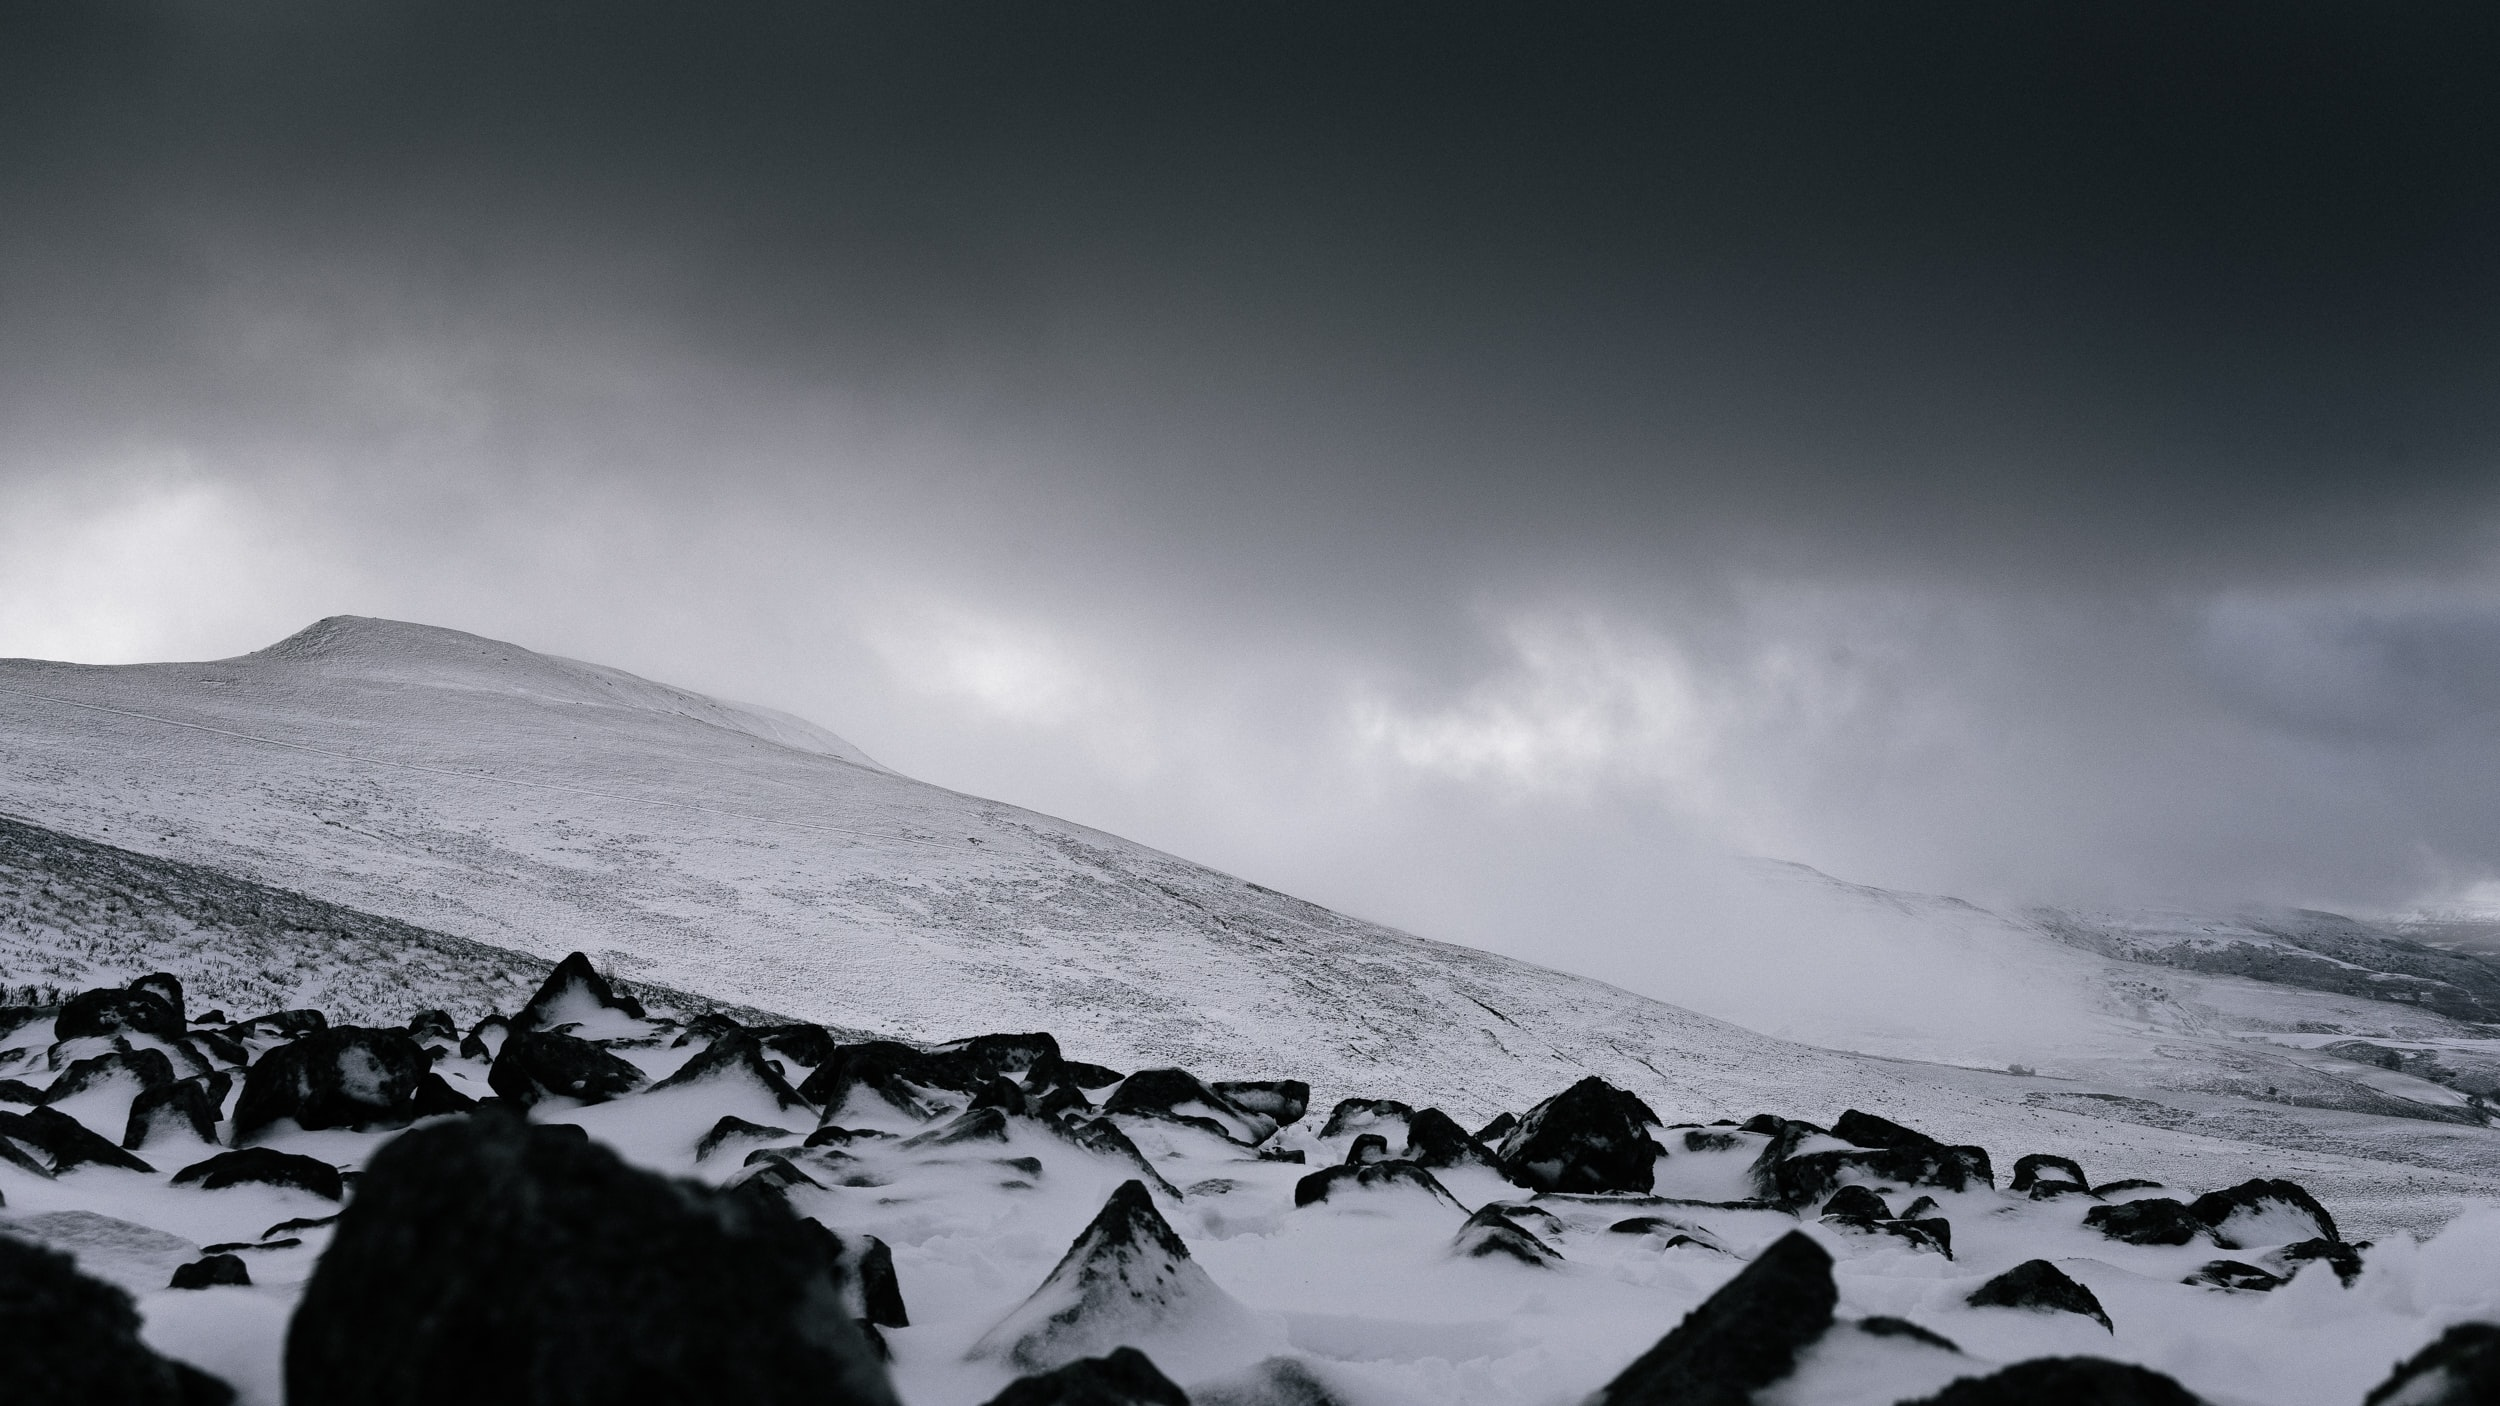 A night time shot of a dark clouded sky above a sloped hill in Brecon, Wales